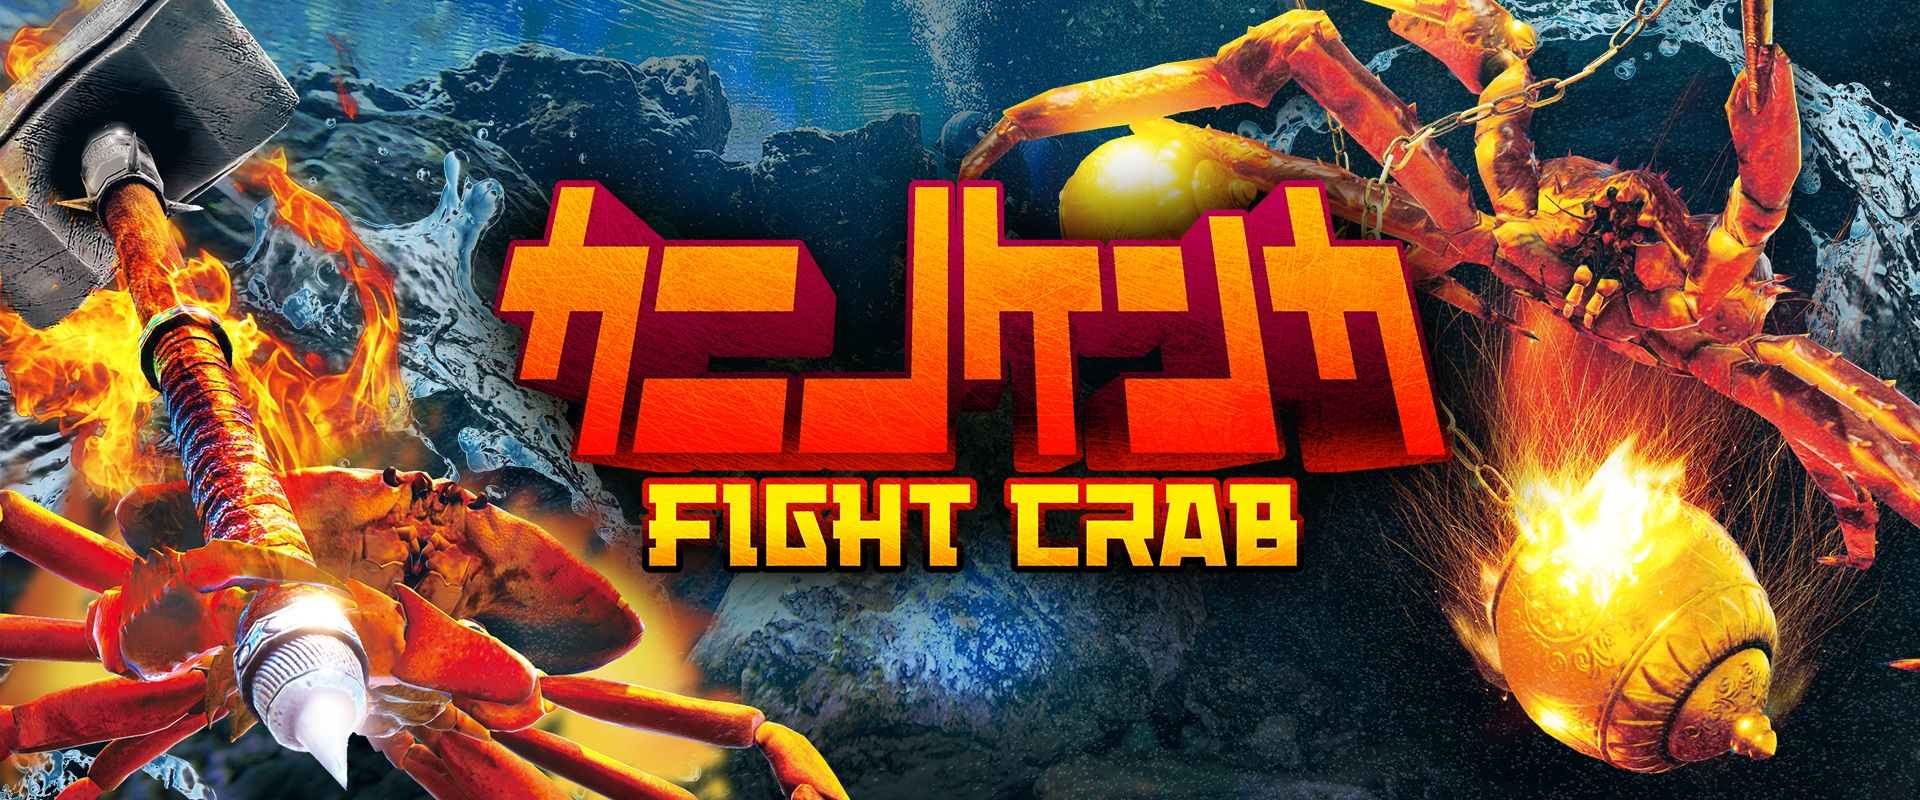 Fight Crab即將登陸Switch!